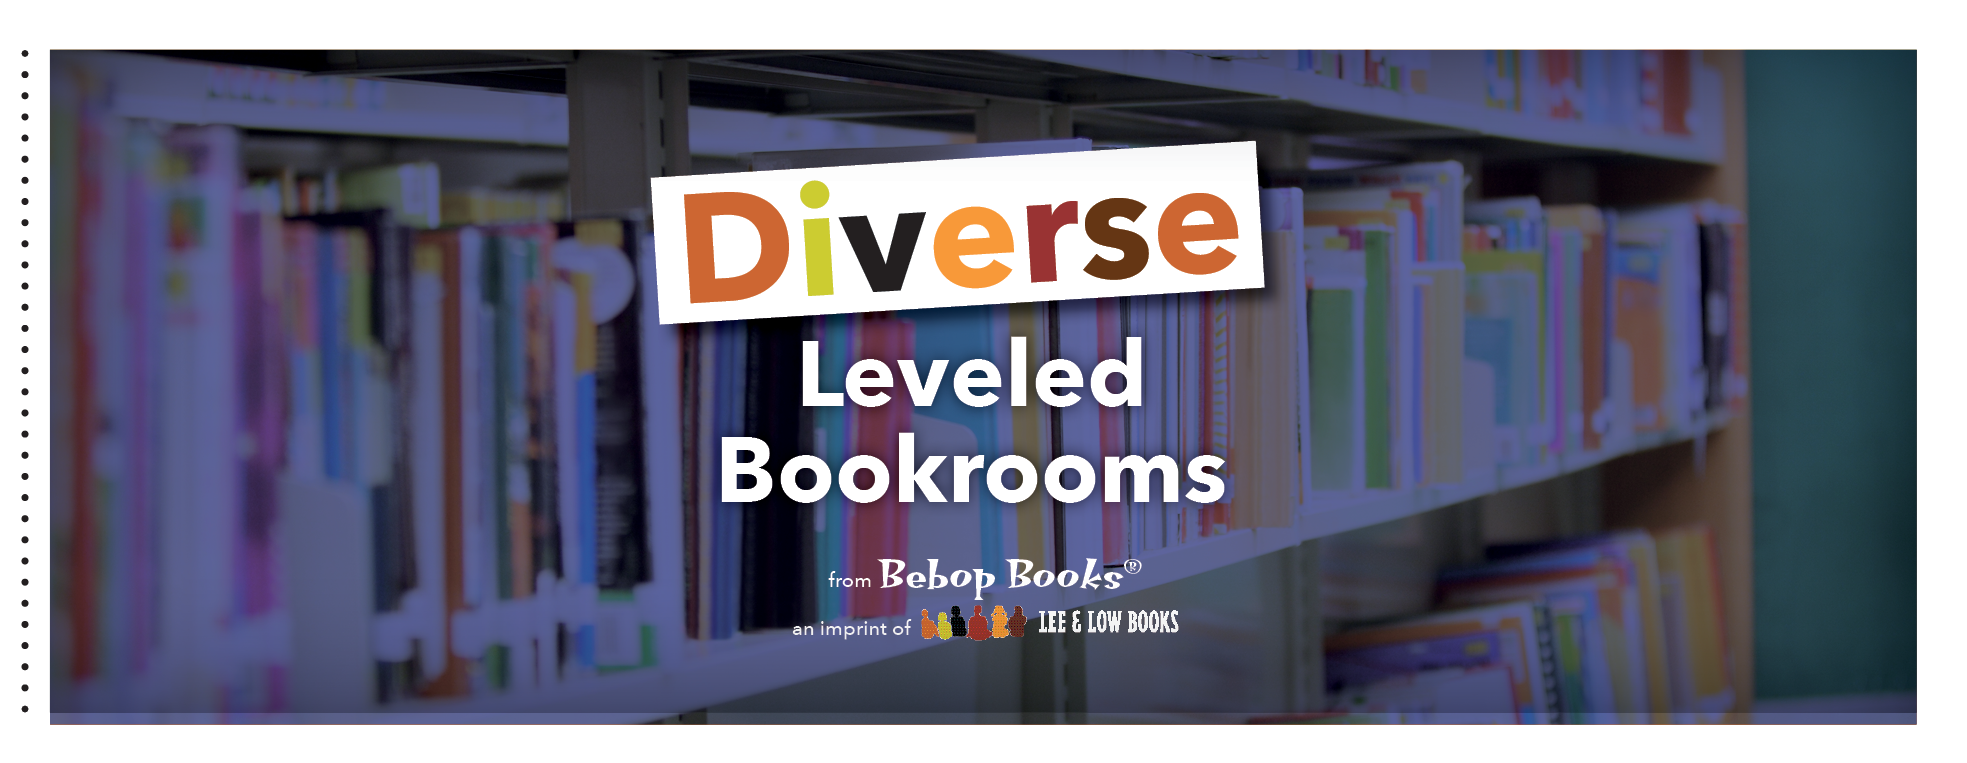 Educators_diverseleveledbookrooms